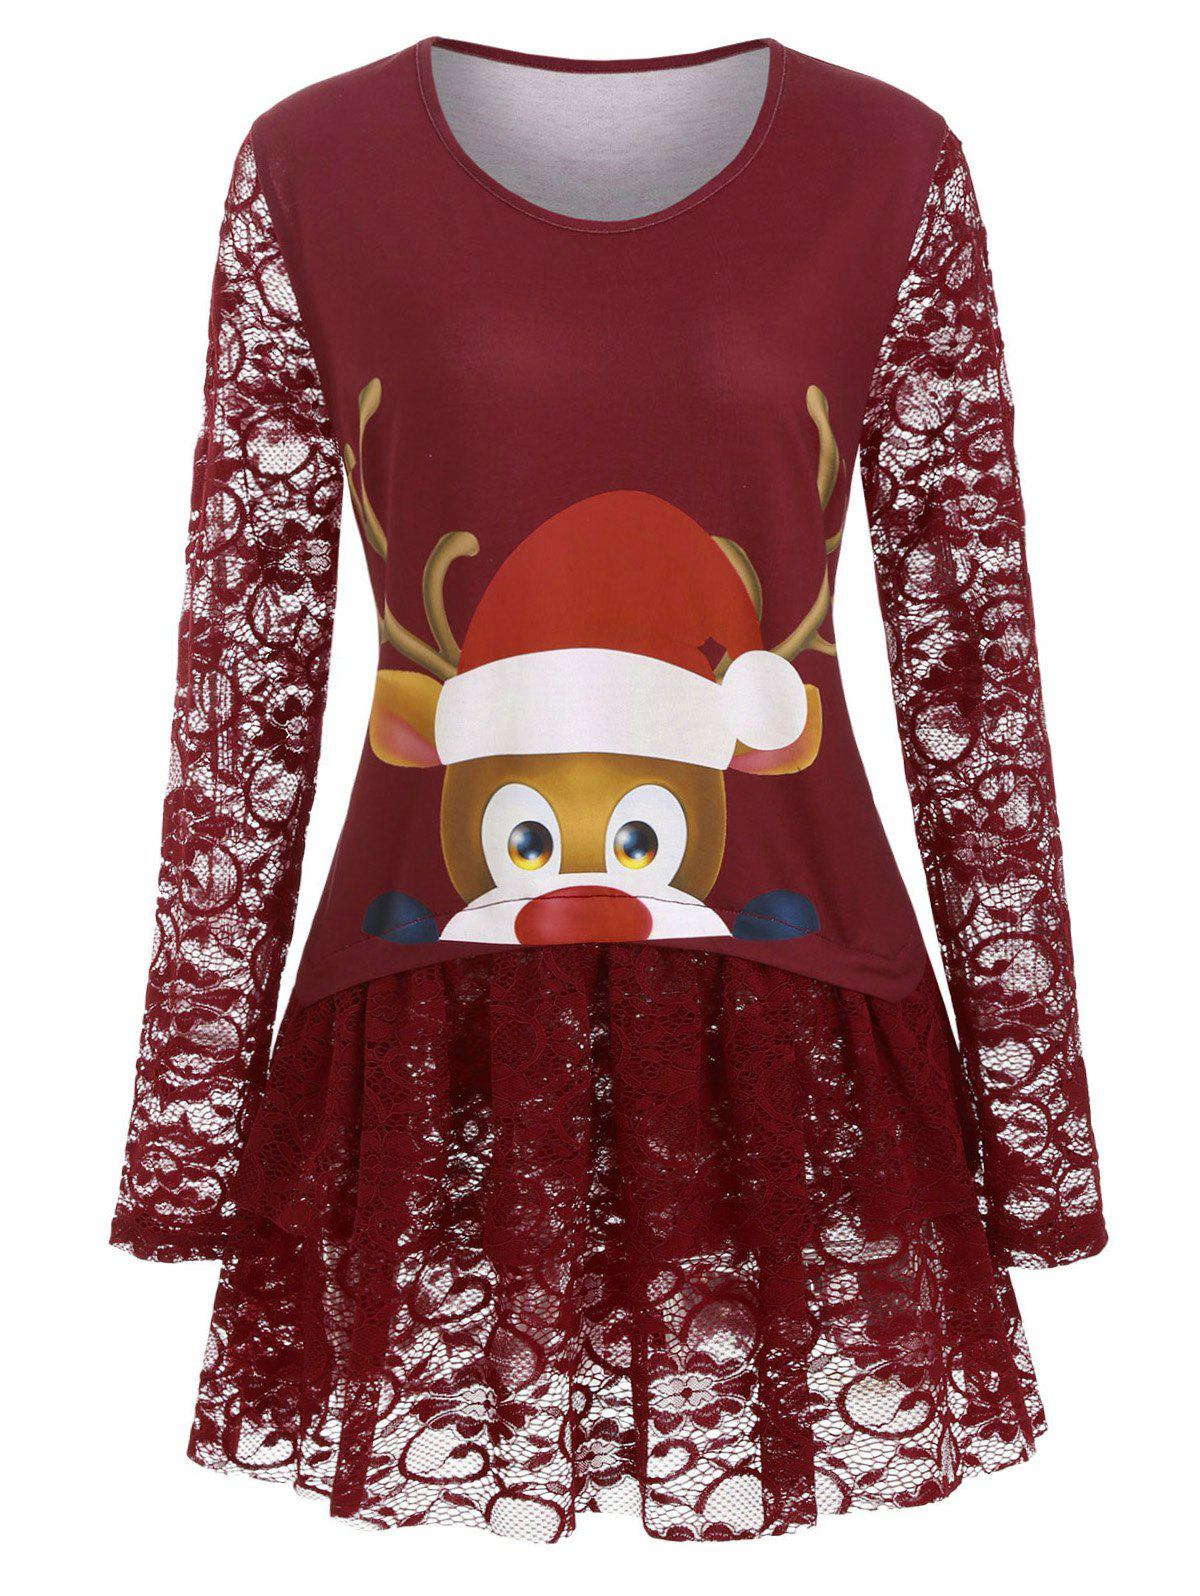 Longline Cartoon Elk Print Lace Panel Christmas Plus Size Top - RED 4X